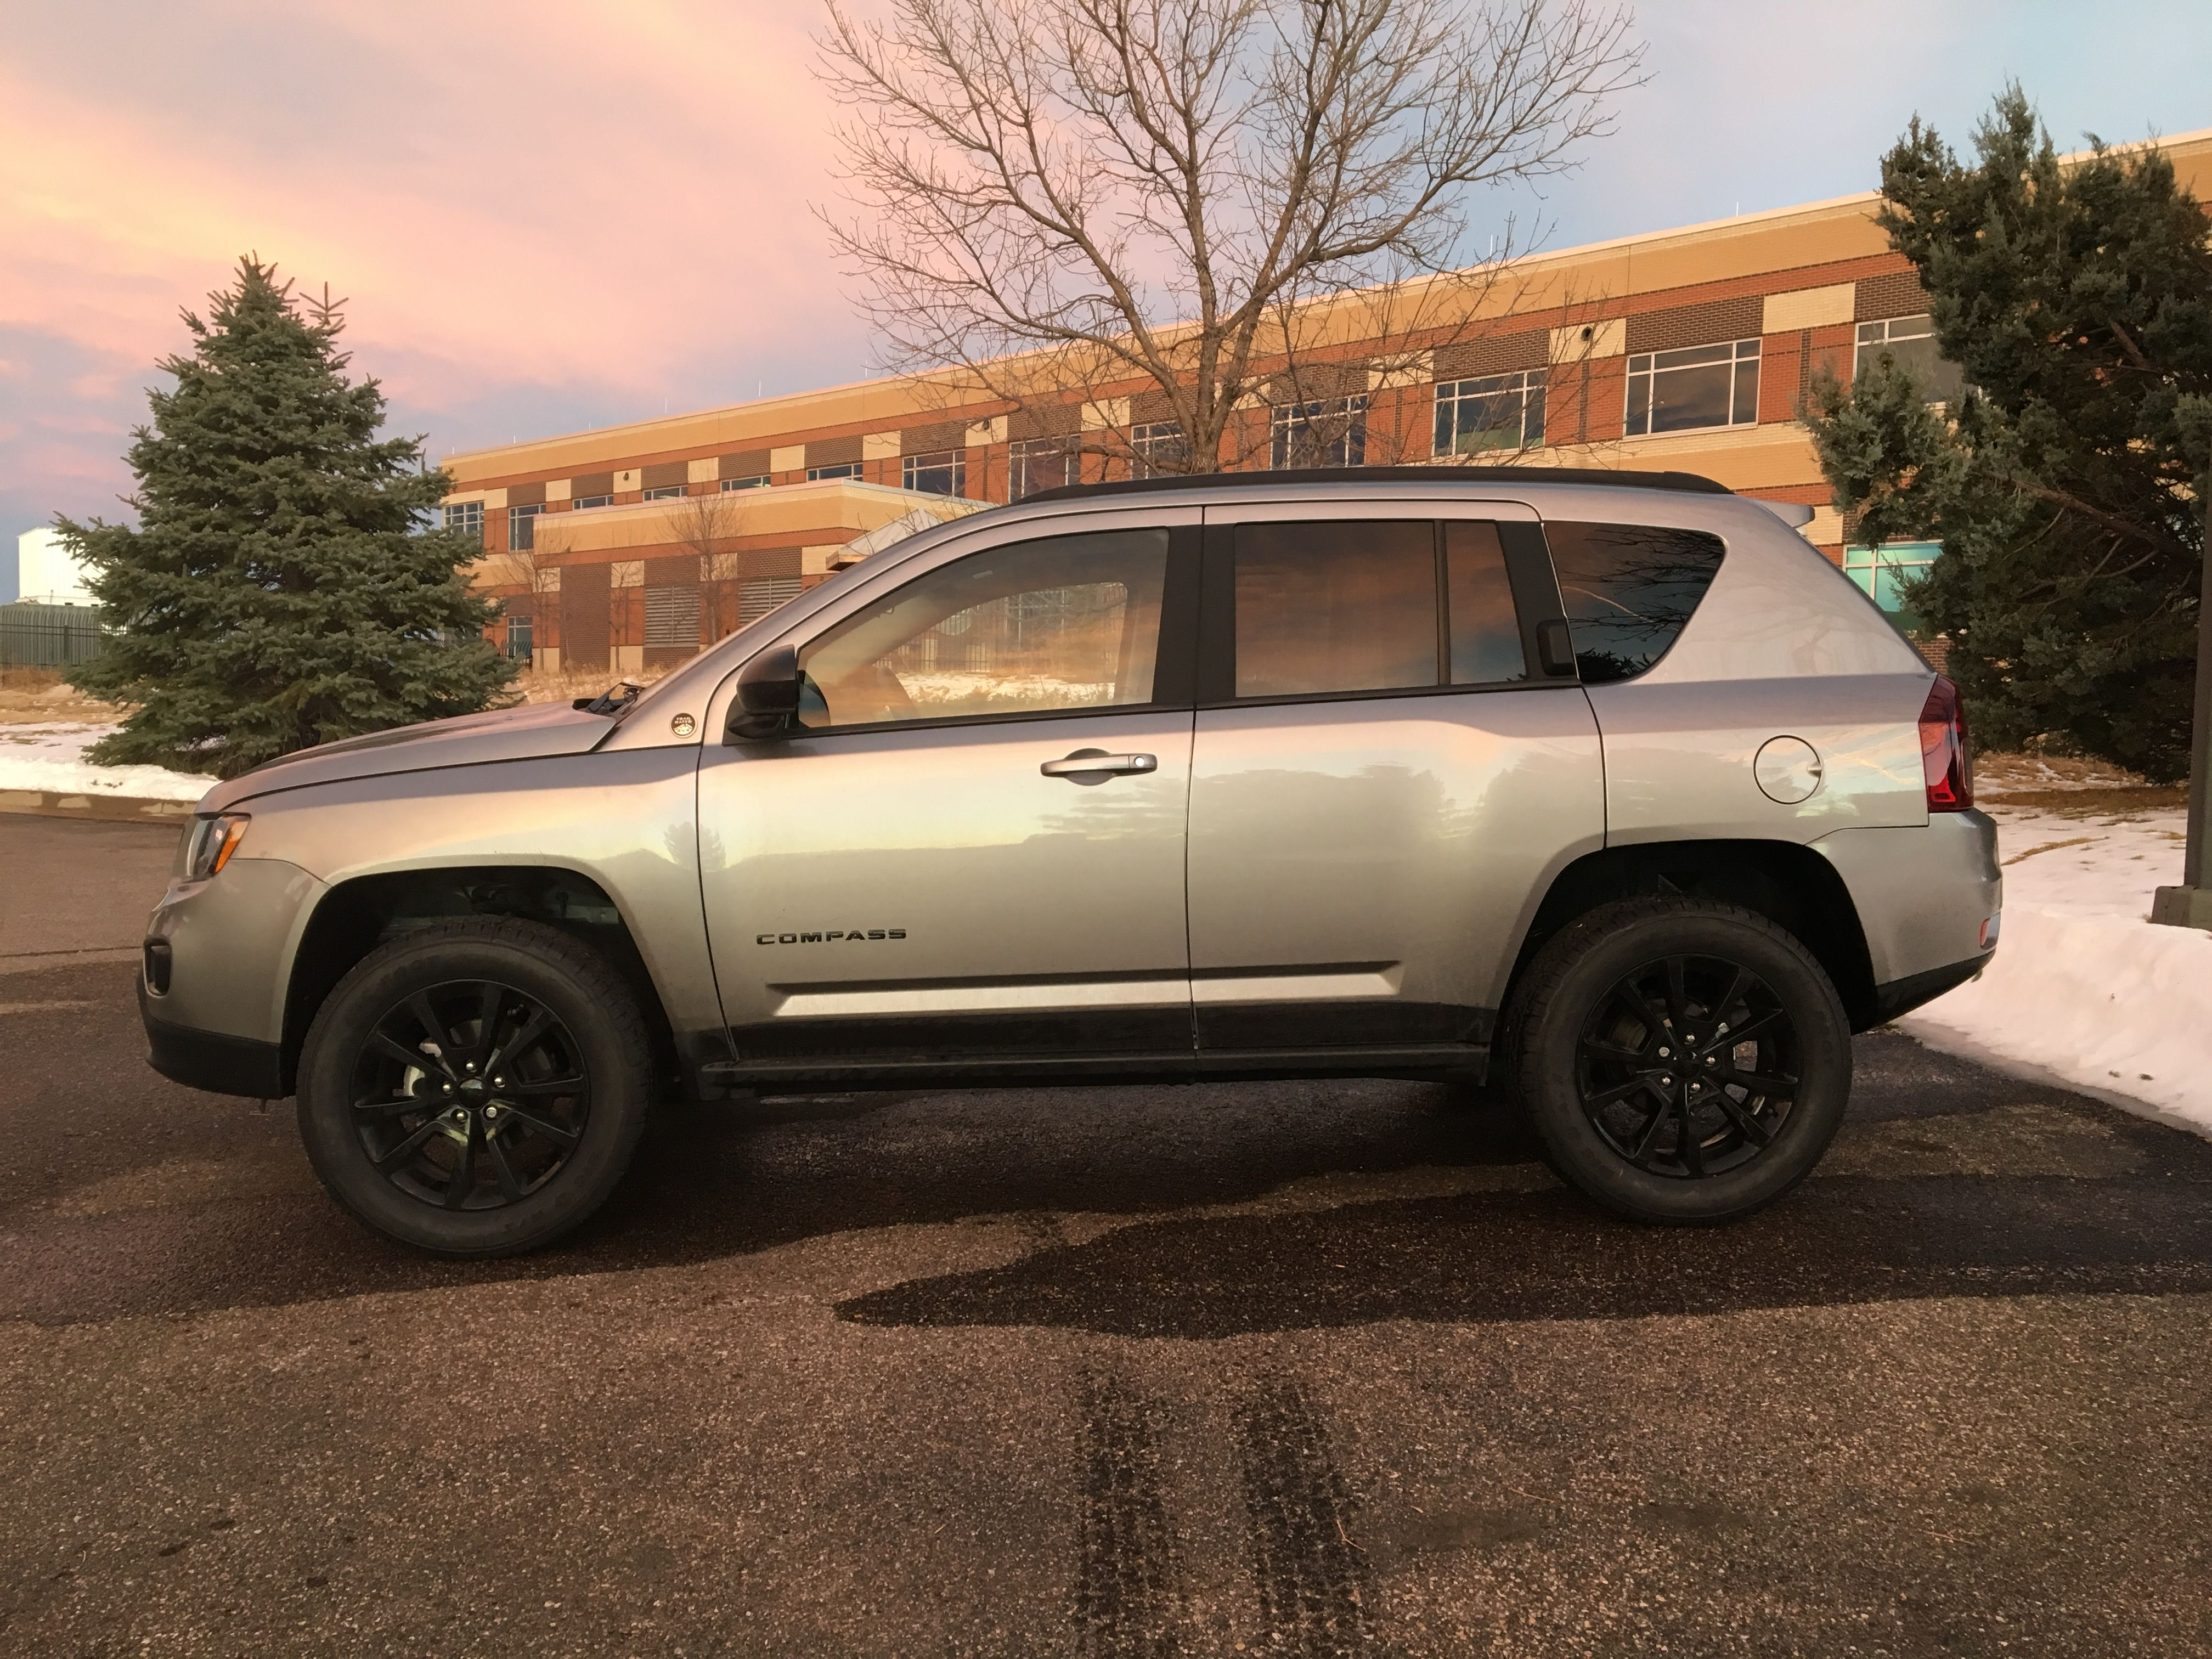 jeep compass with rocky road lift cars pinterest jeep compass jeeps and jeep life. Black Bedroom Furniture Sets. Home Design Ideas